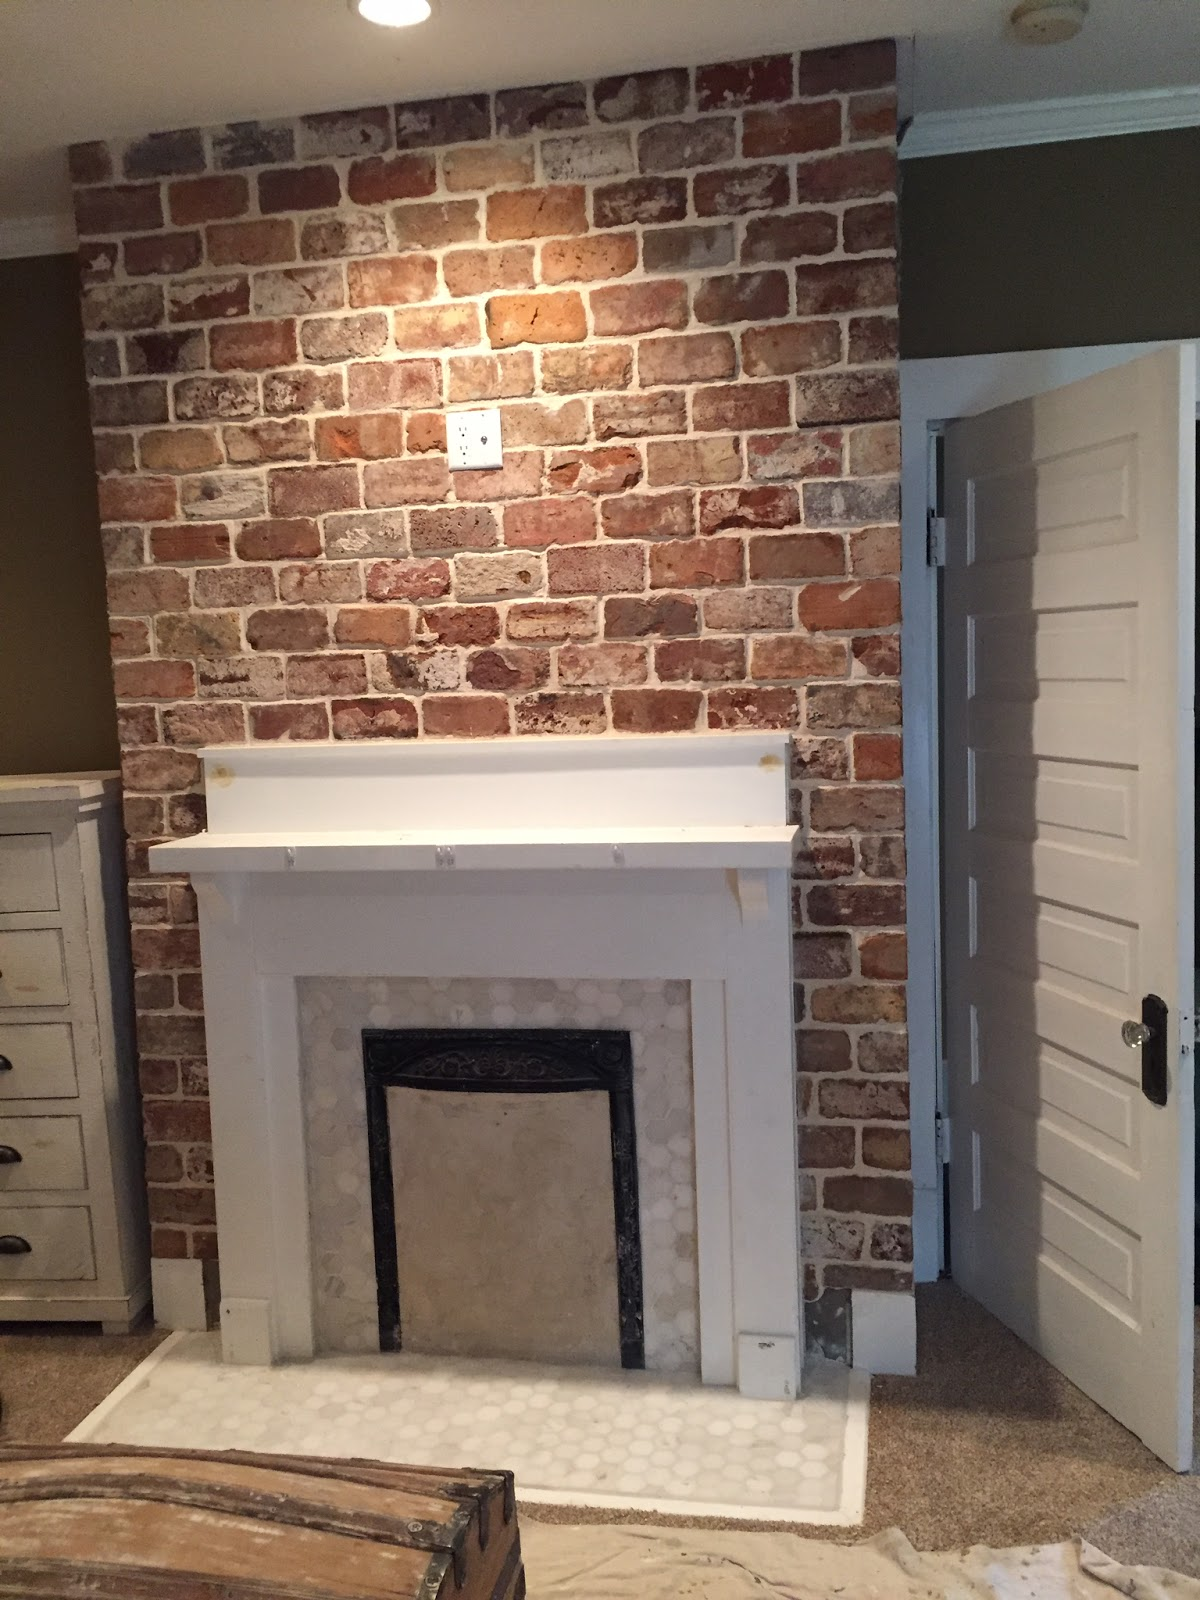 A Vintage Bricks Fireplace Installation / Reclaimed Brick Tile Blog